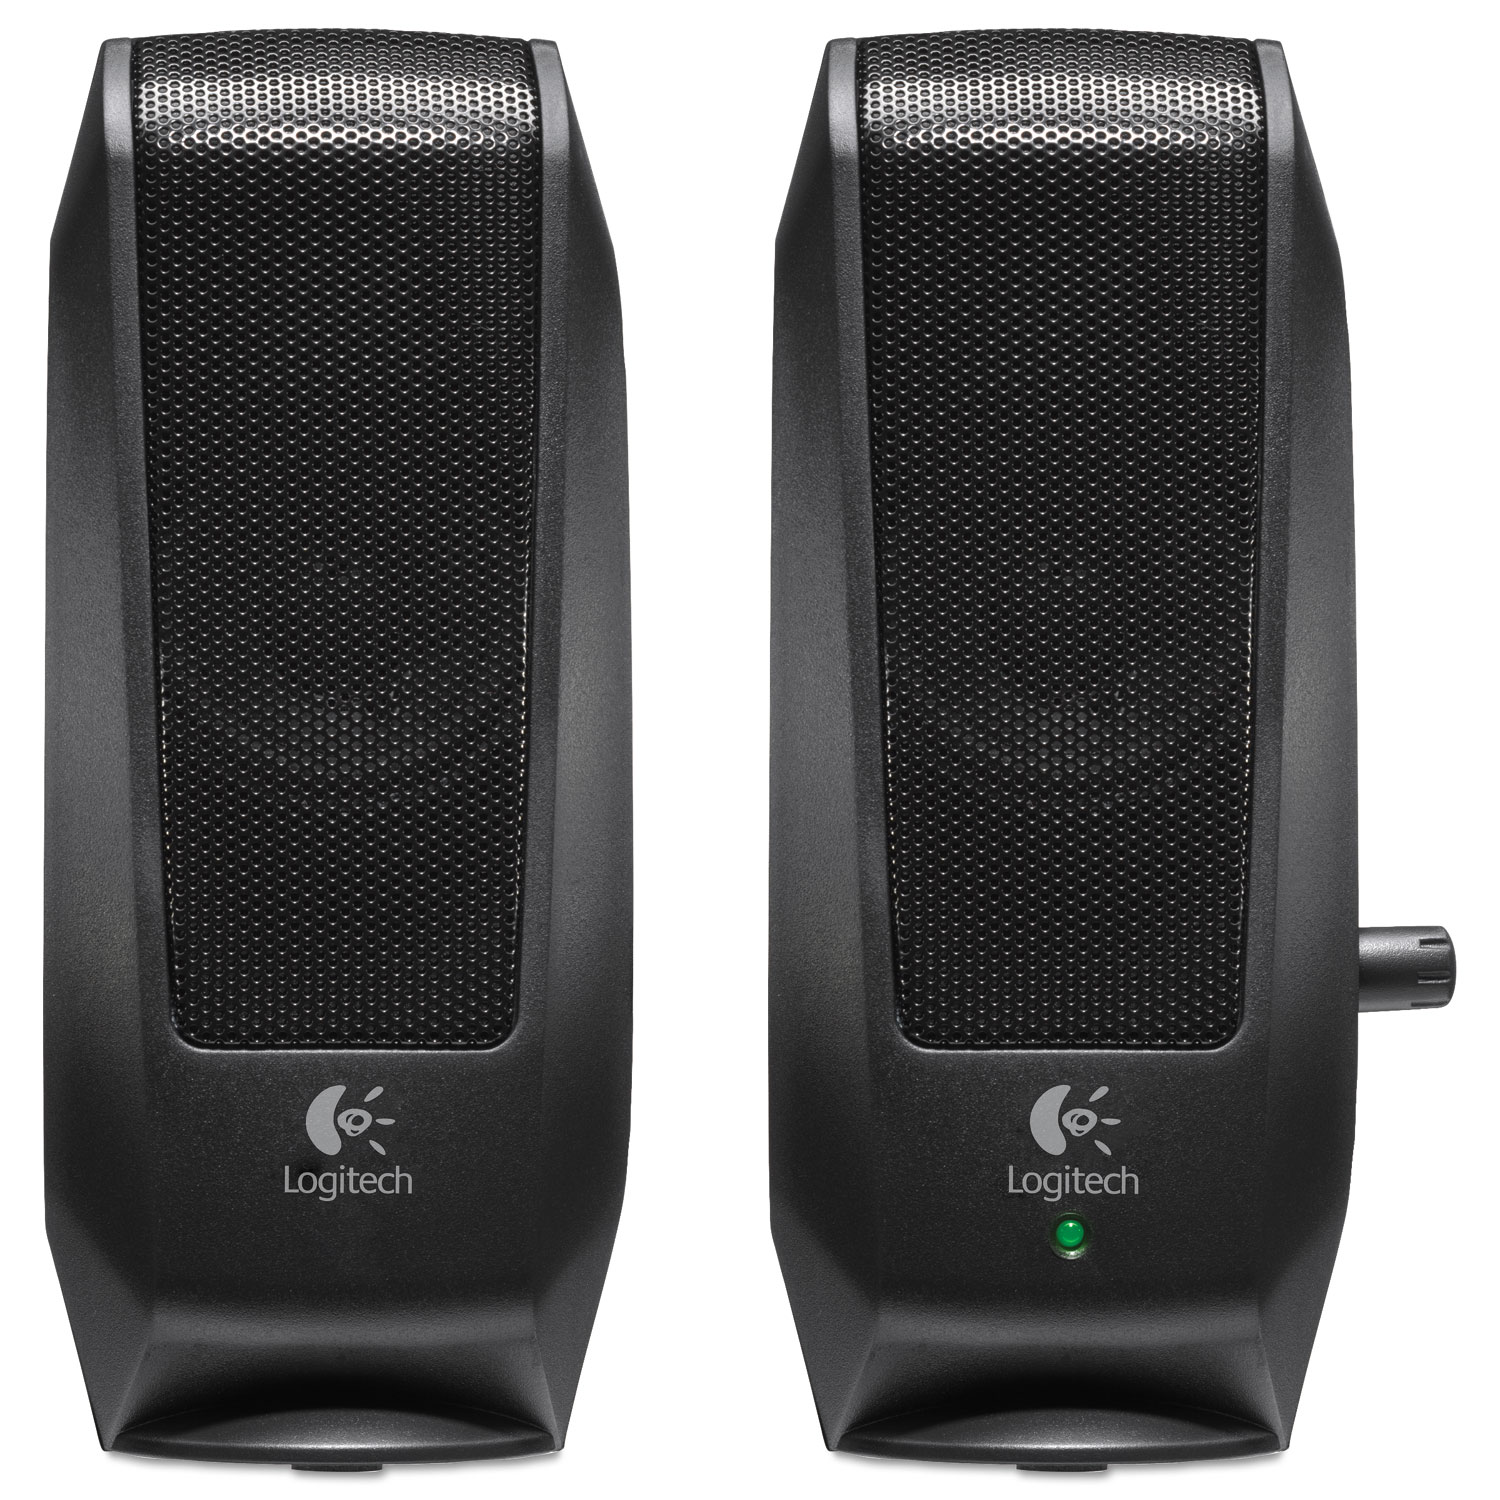 S120 2.0 Multimedia Speakers, Black